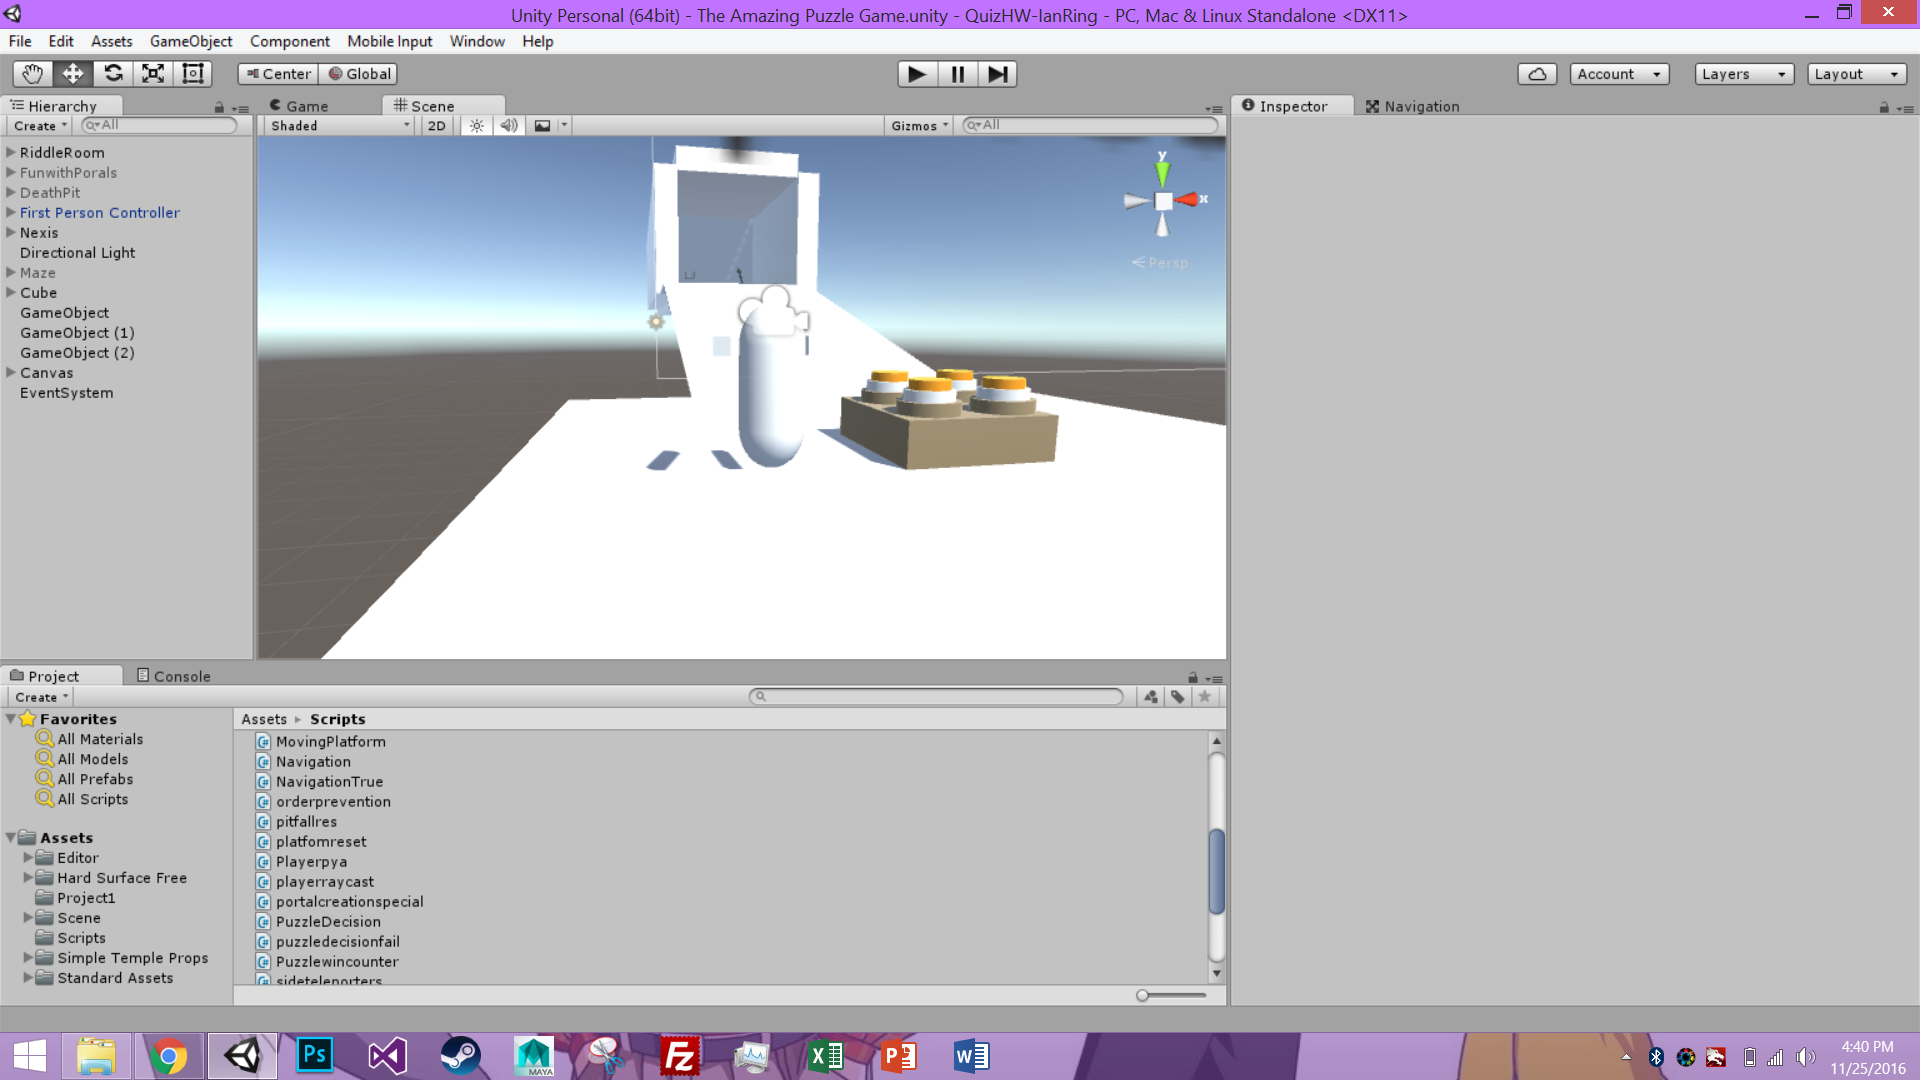 Unity Editor display of project